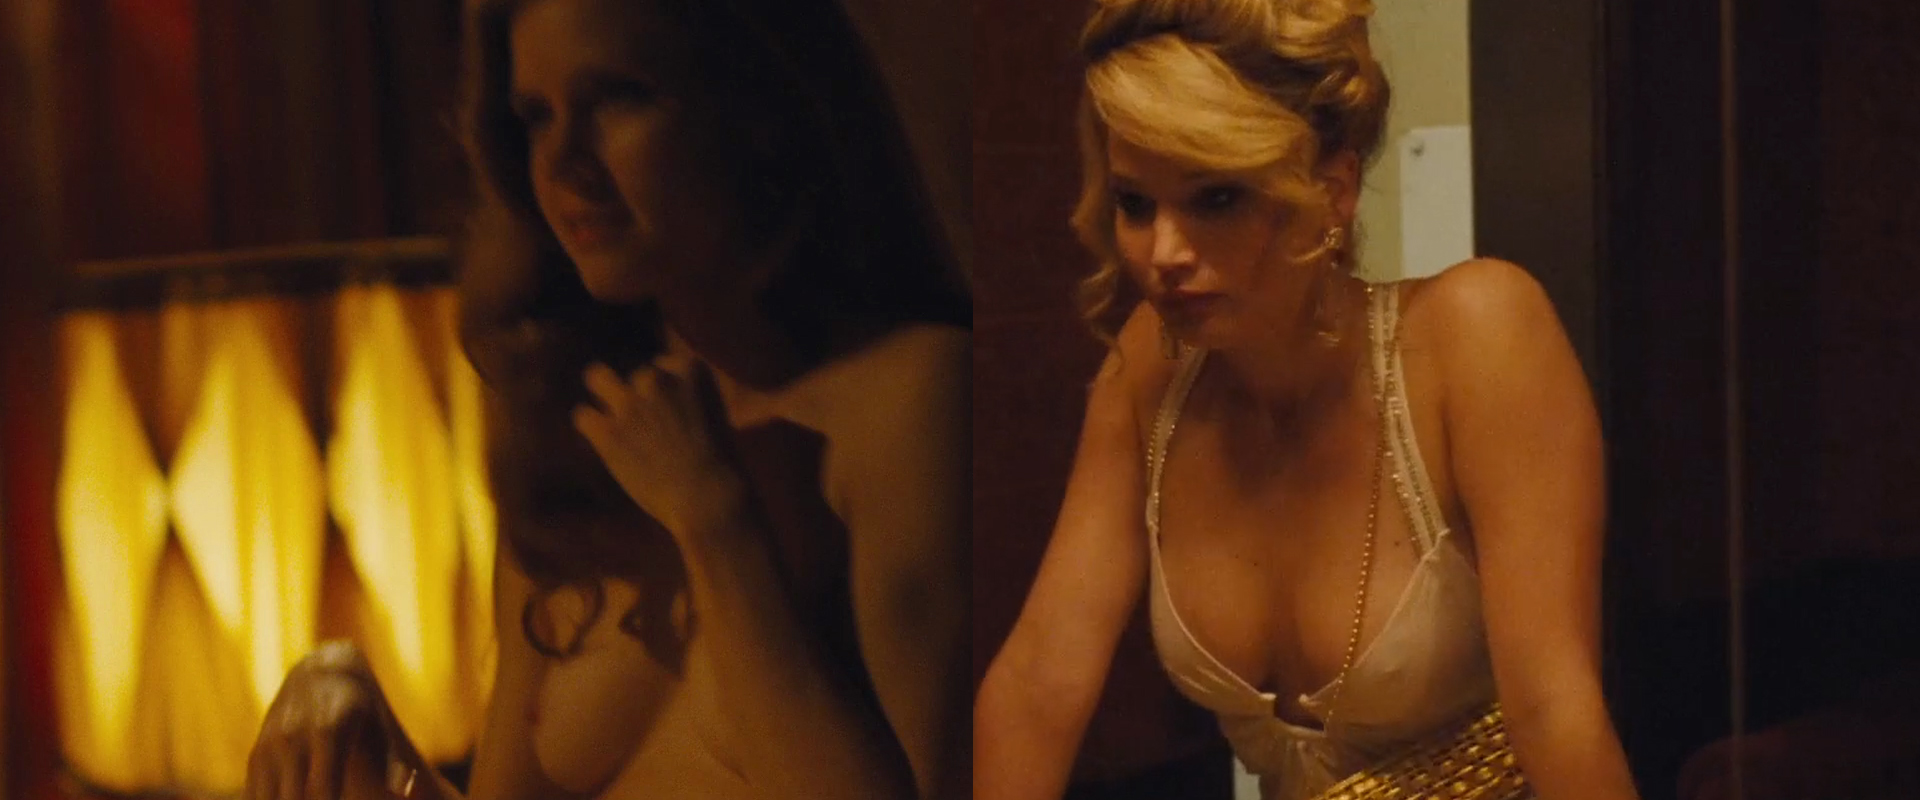 Nude American hustle jennifer lawrence